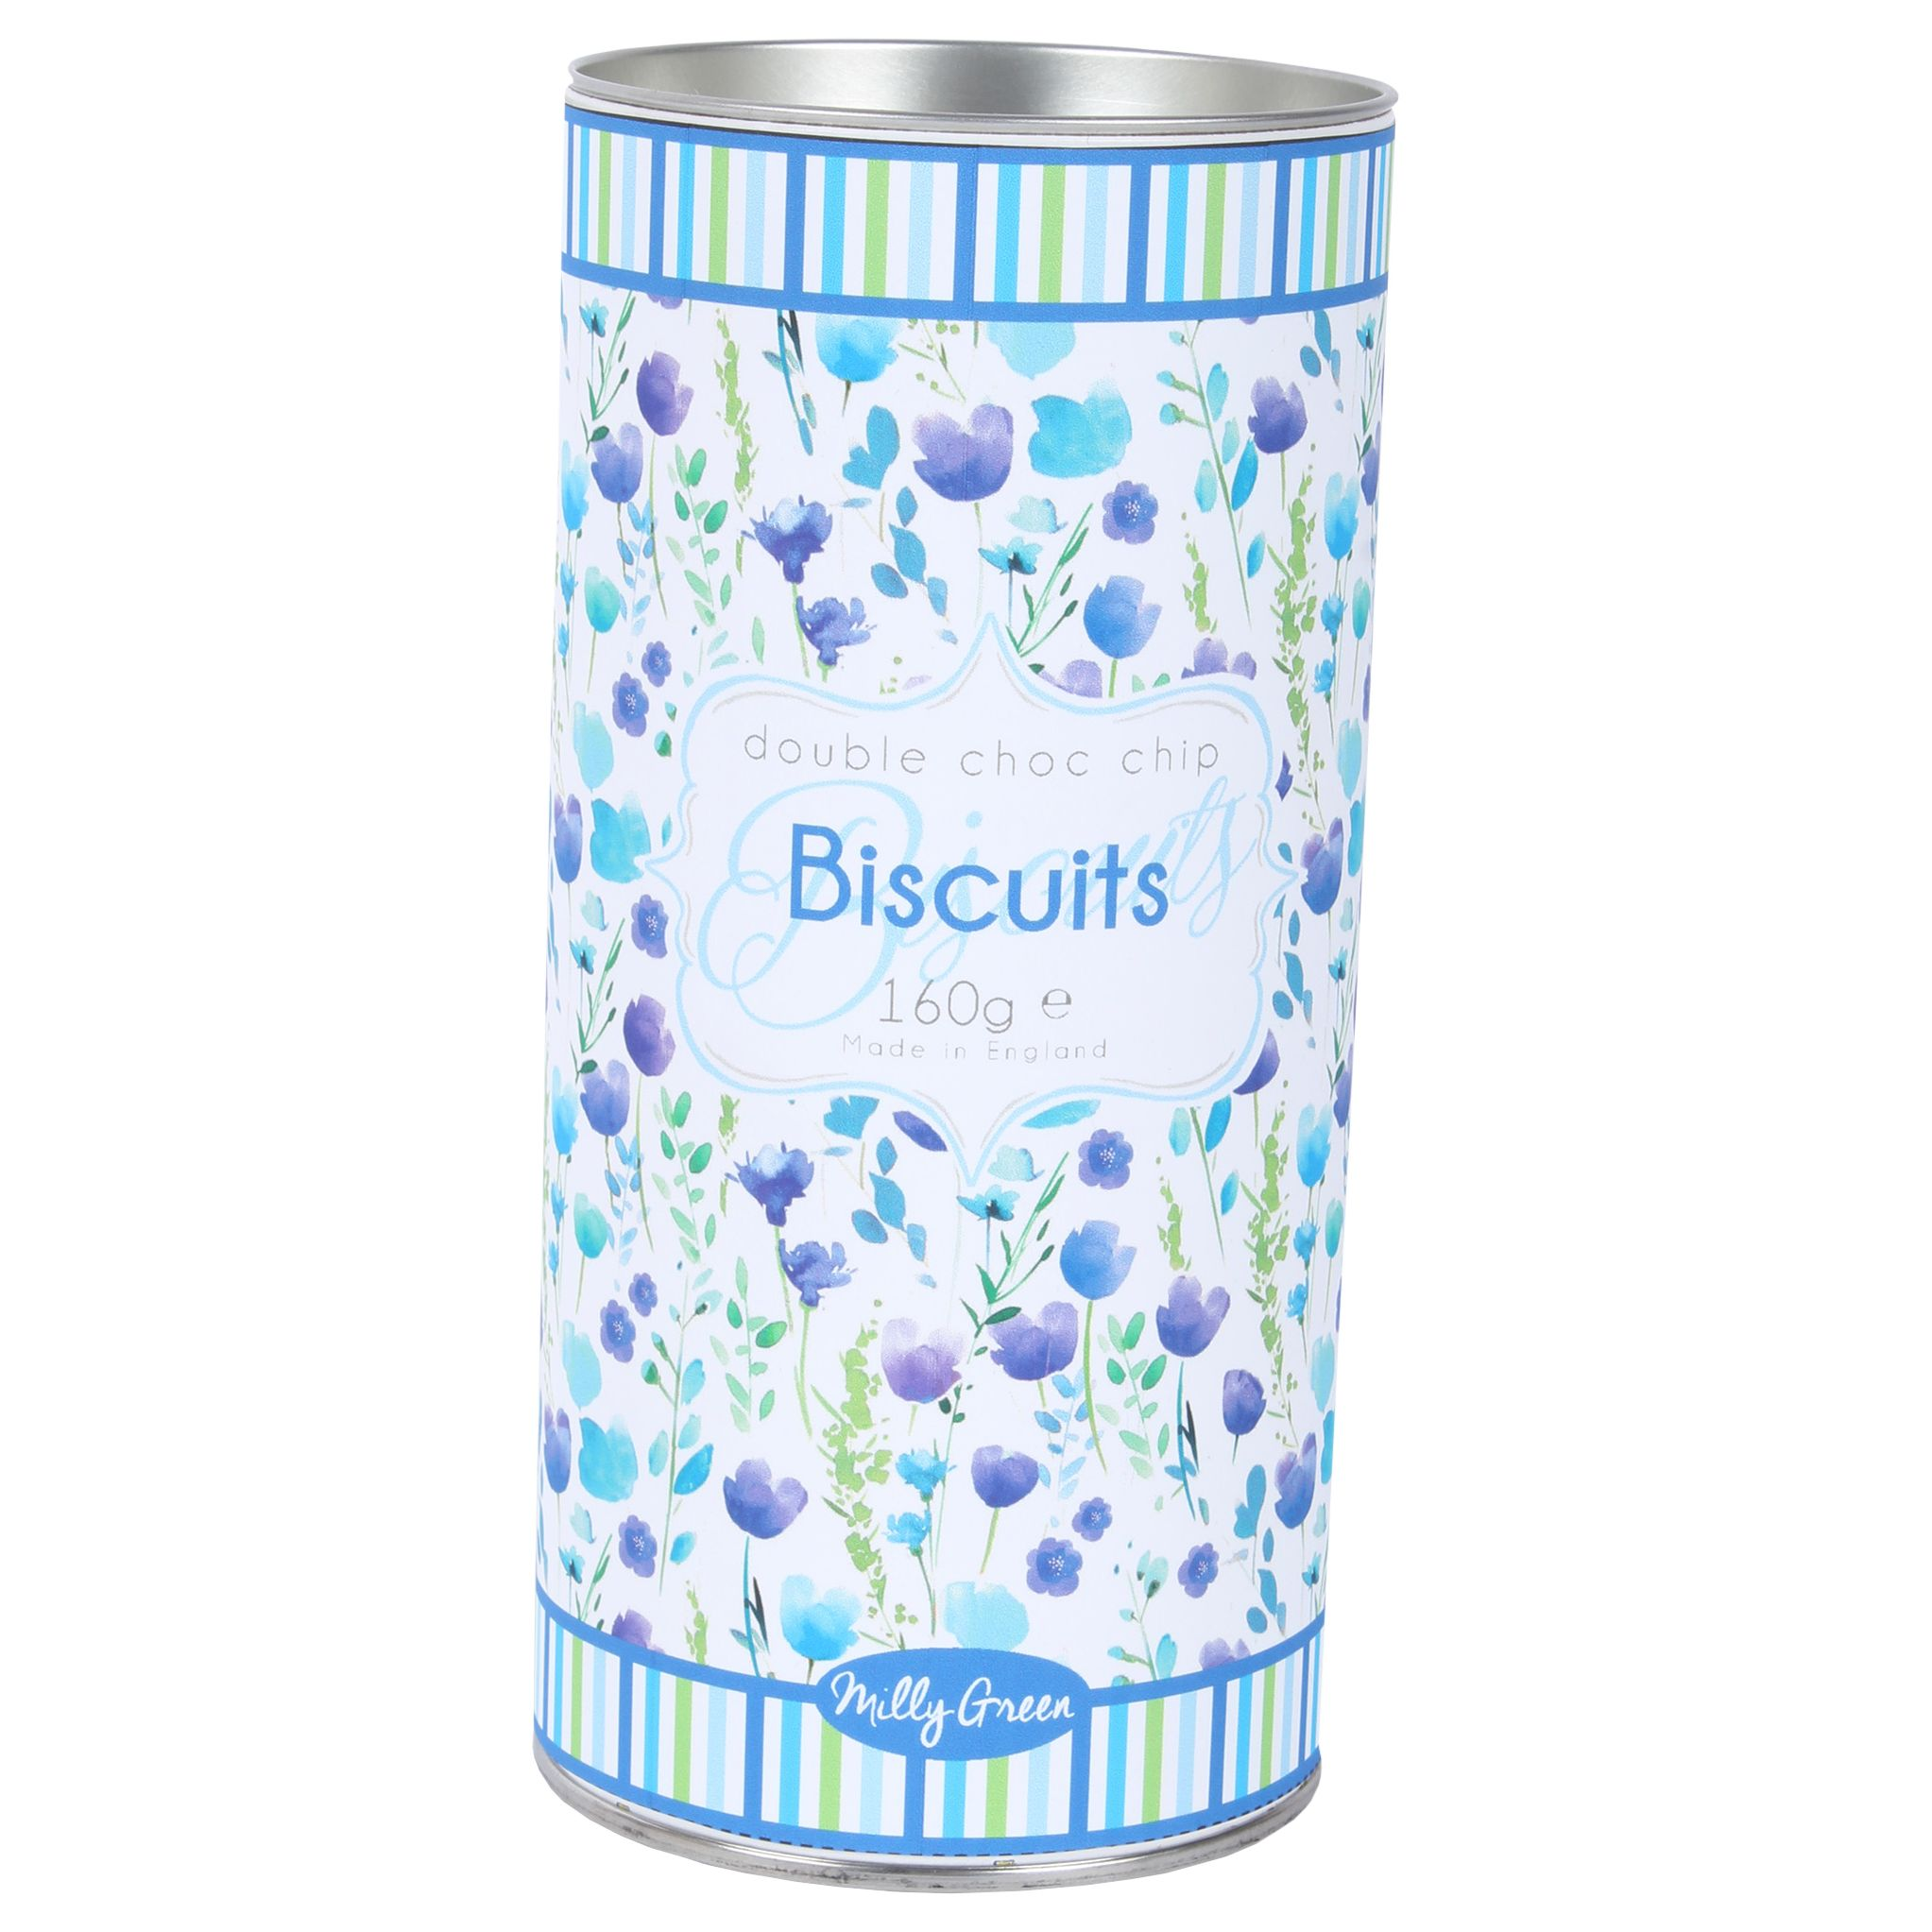 Milly Green Milly Green Double Choc Chip Biscuits, 160g